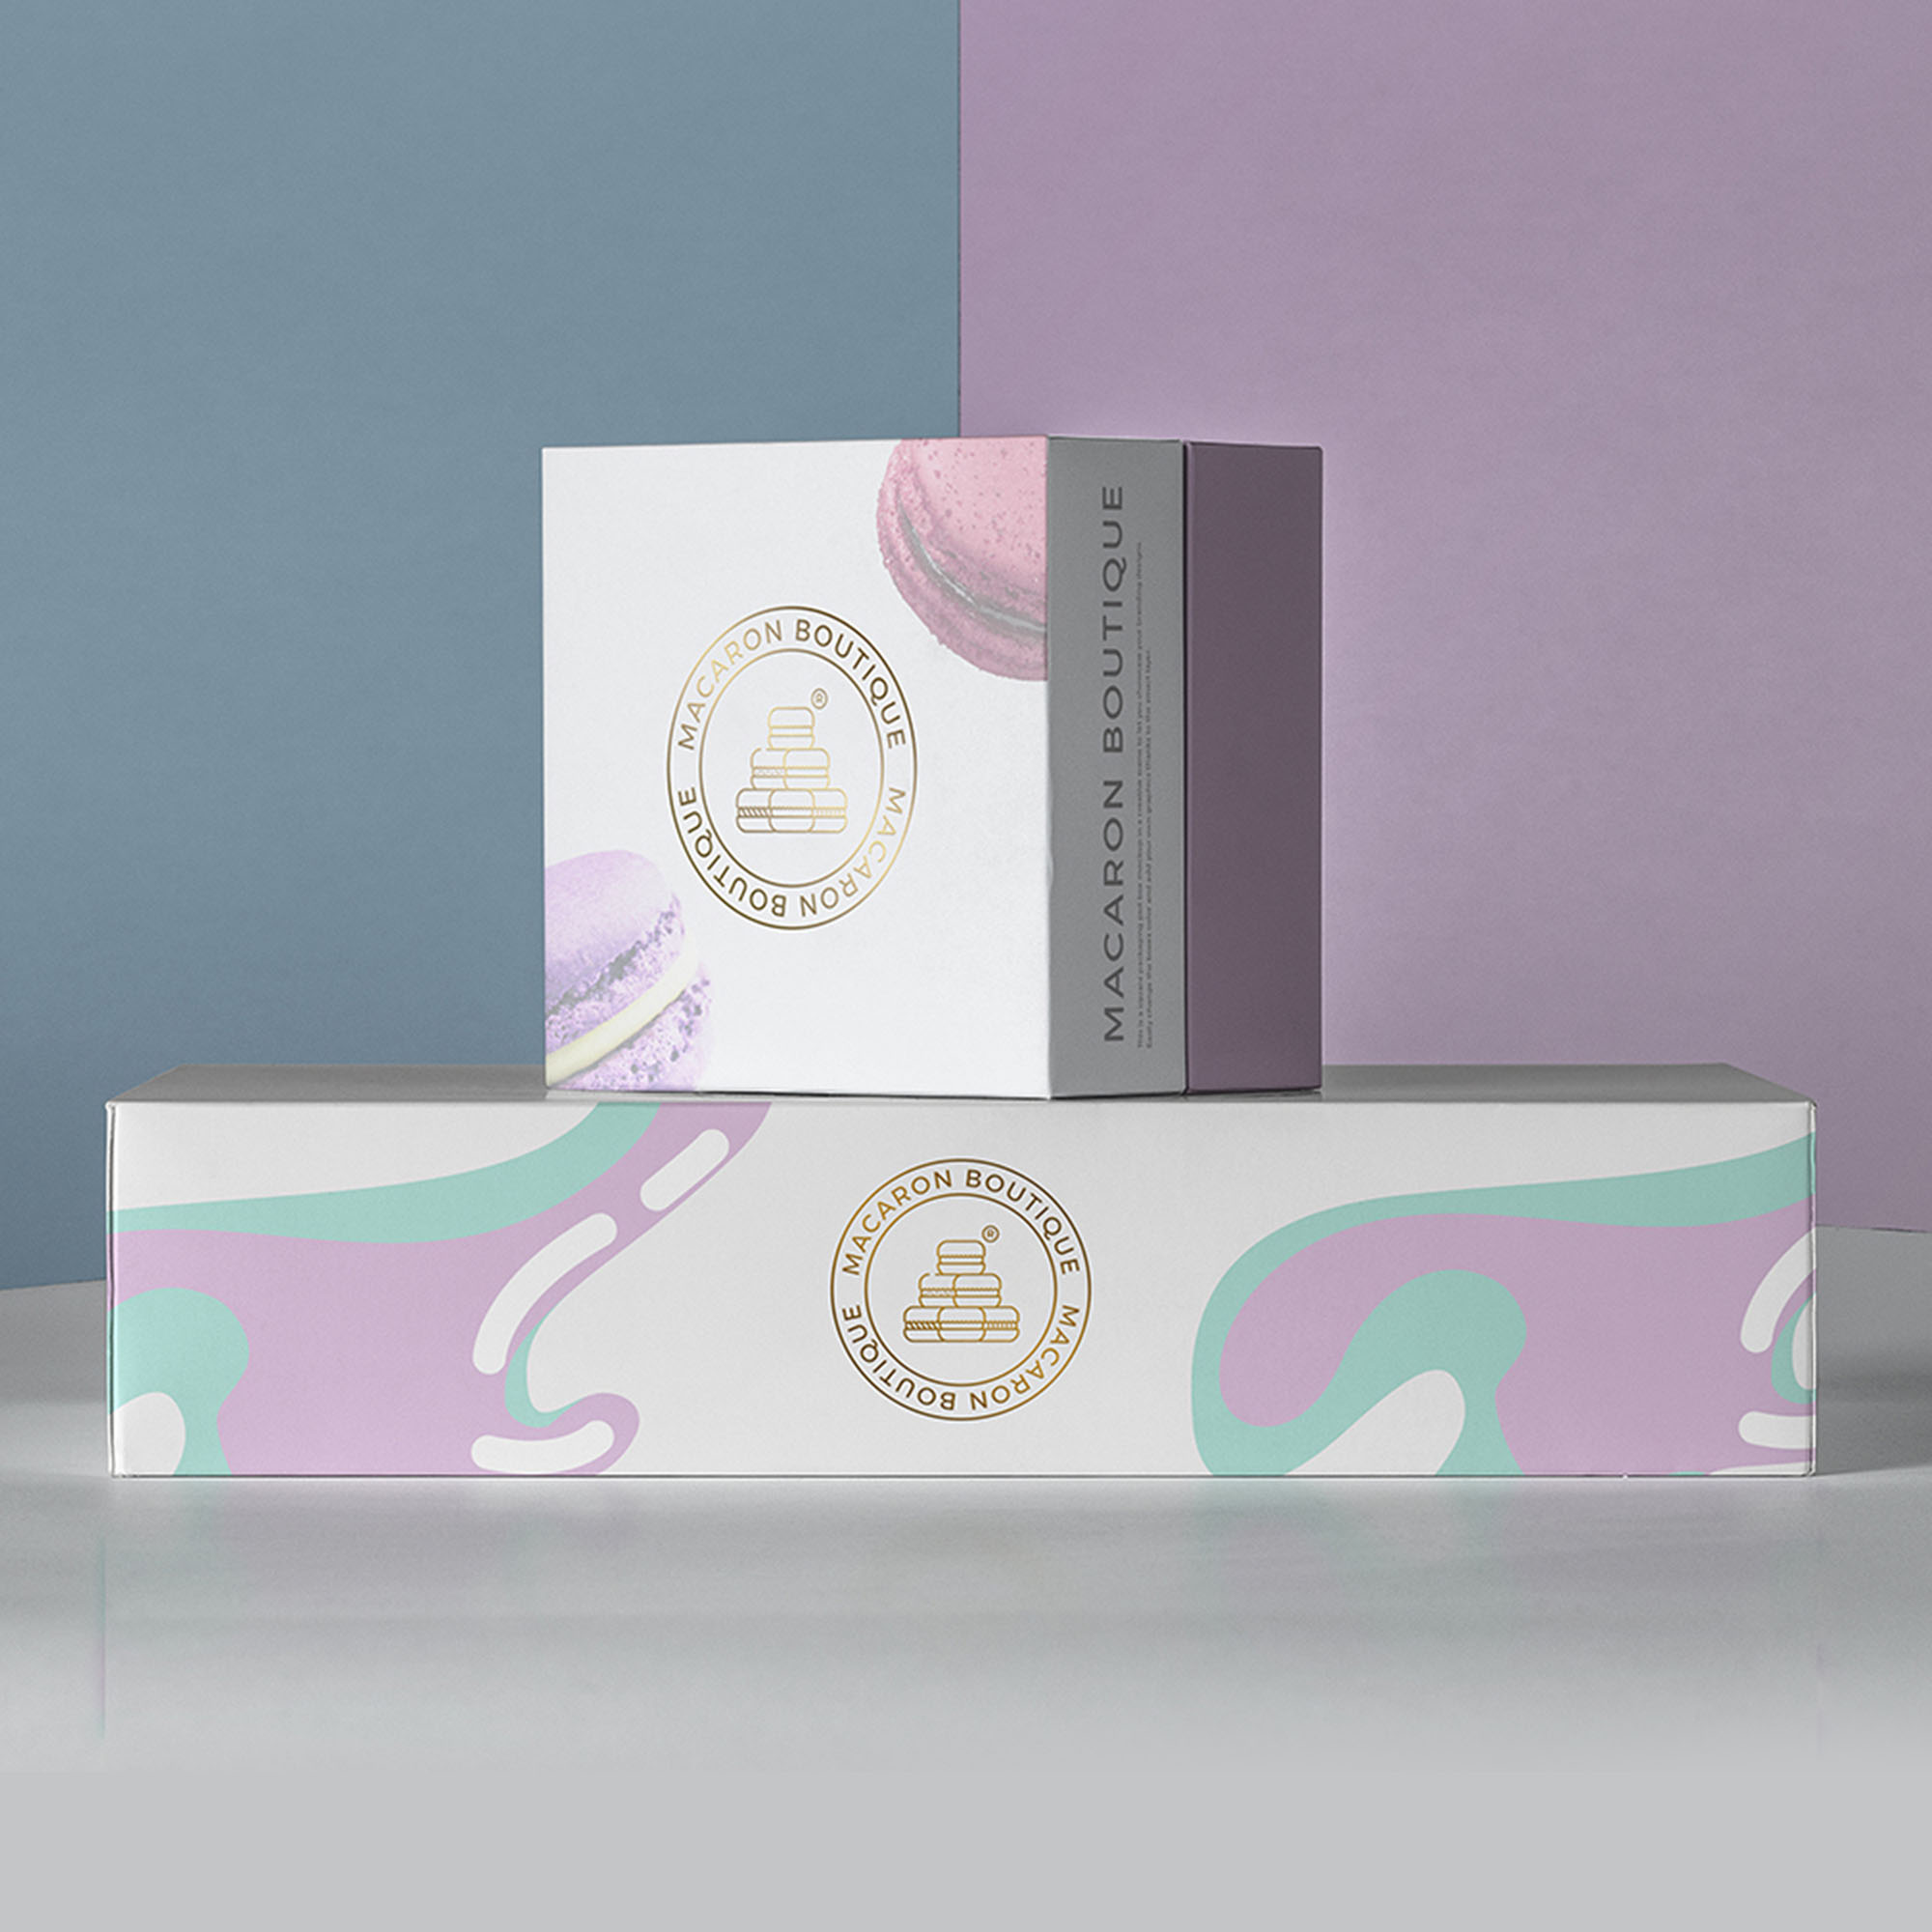 Stationery Design for Macaron Boutique Patisserie